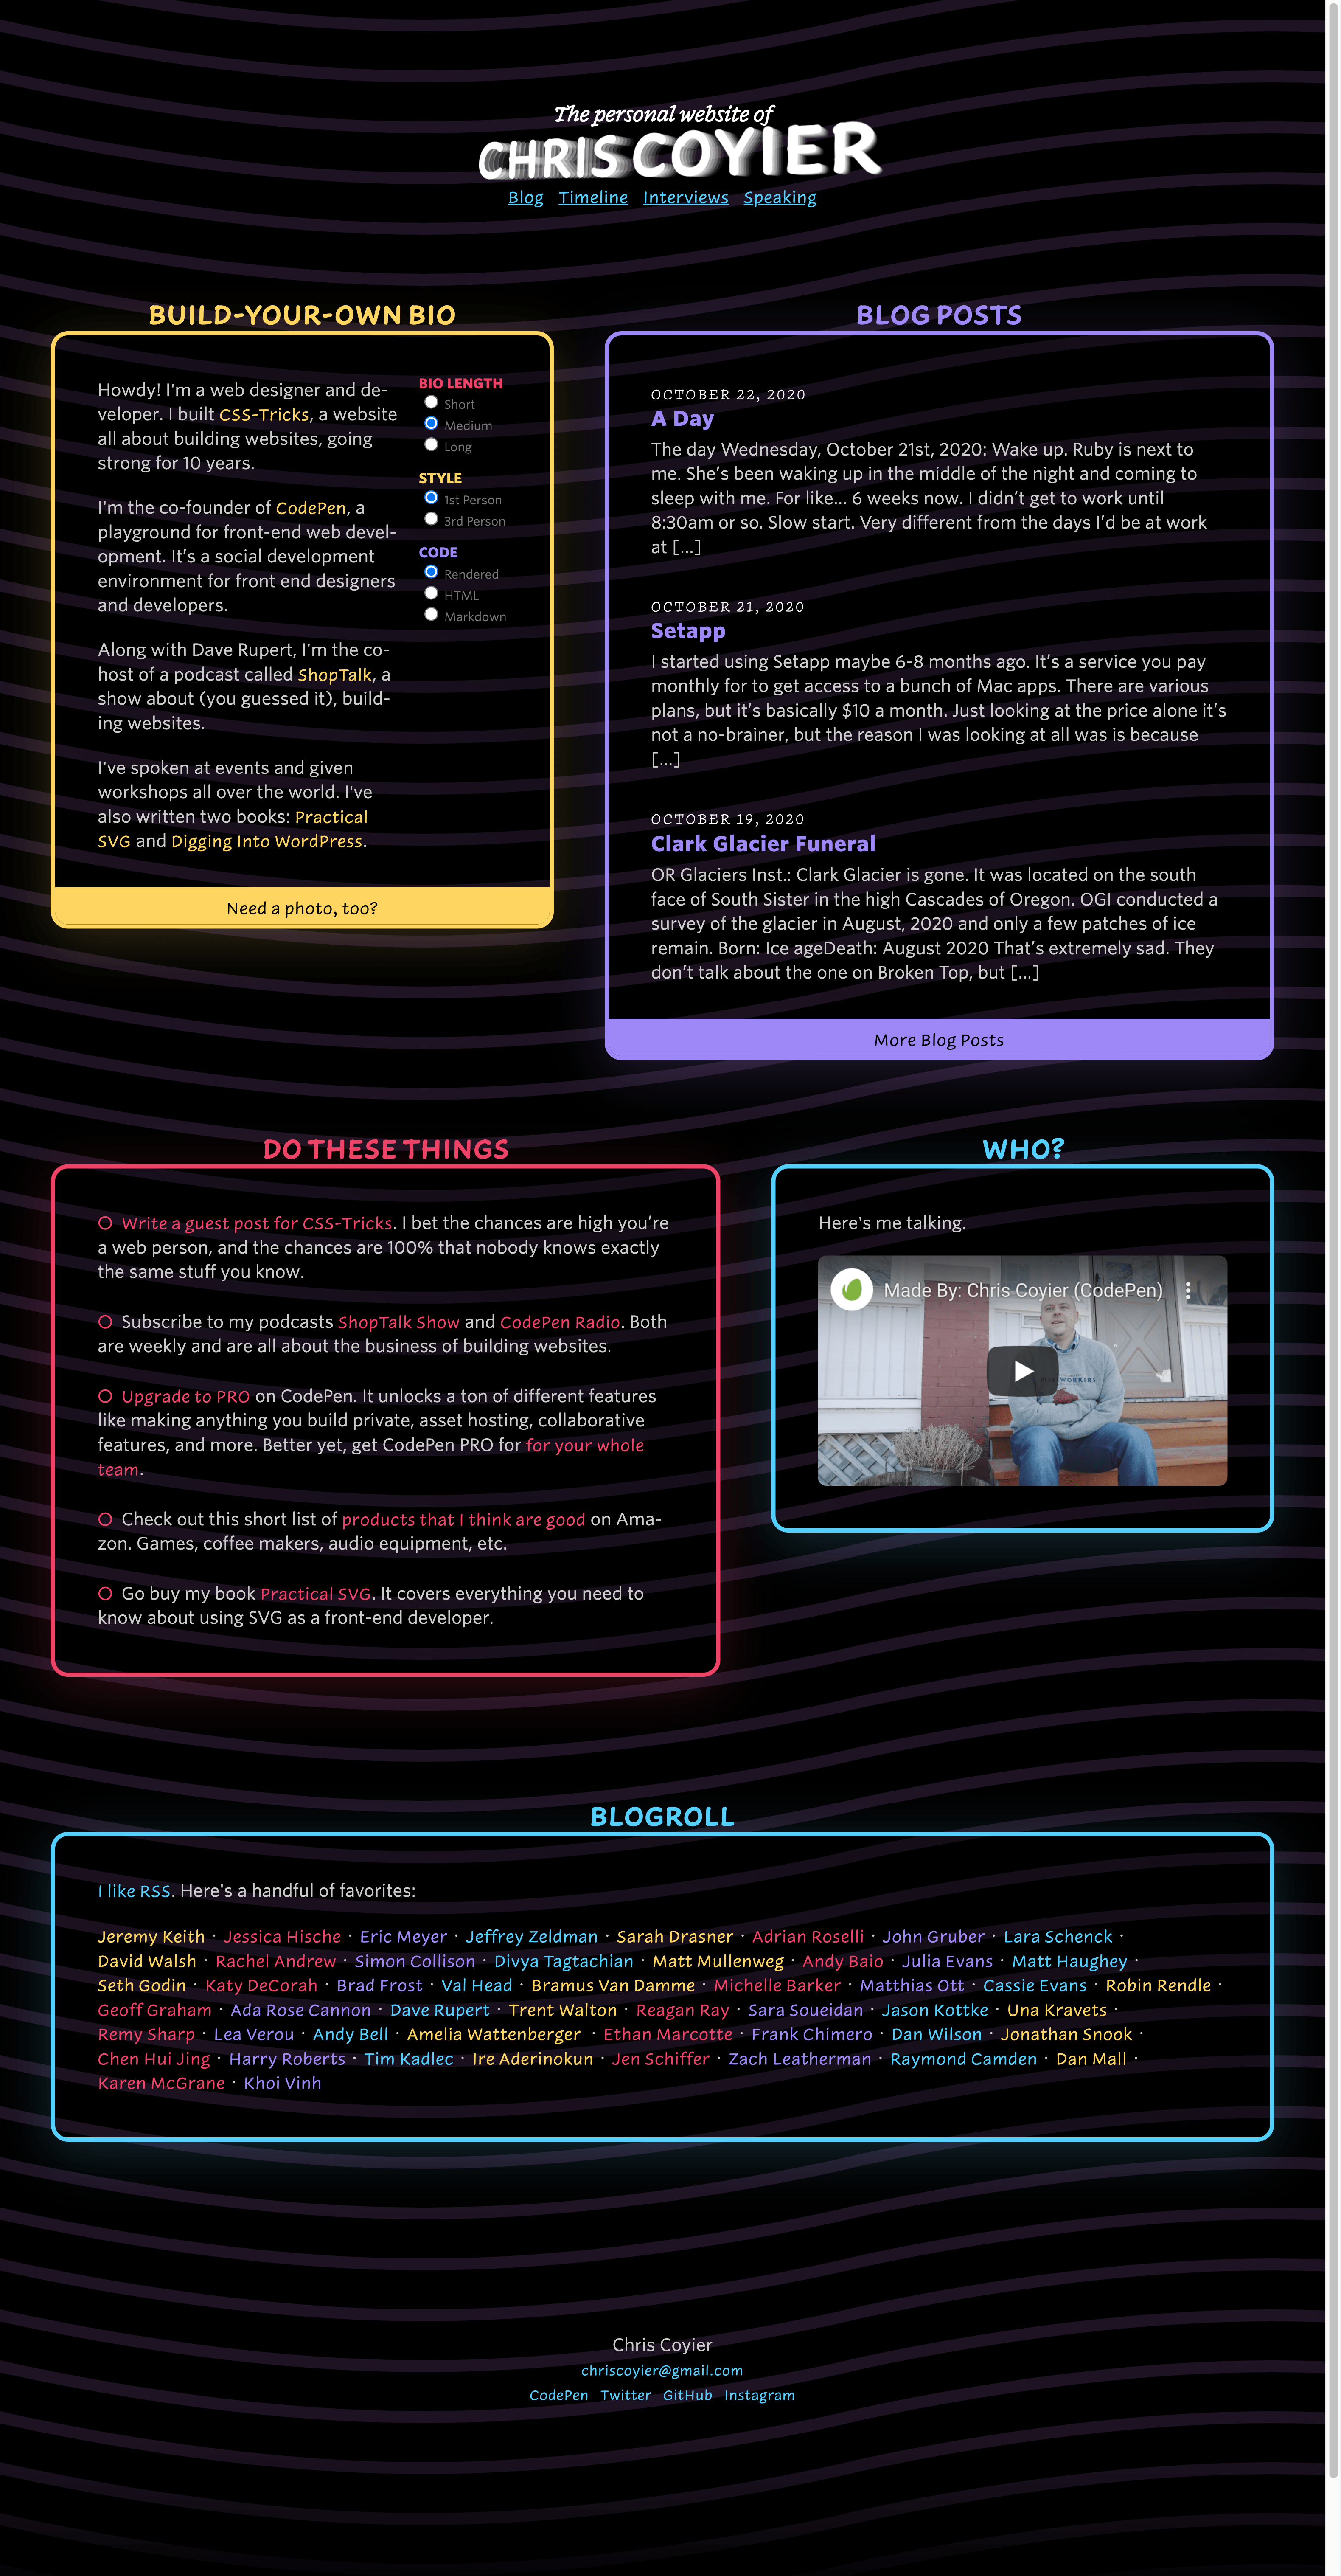 Screenshot of the entire length of the homepage of ChrisCoyier.net. Four major boxes of content: build-your-own bio in yellow, blog posts in purple, action items in red, and a video in blue.